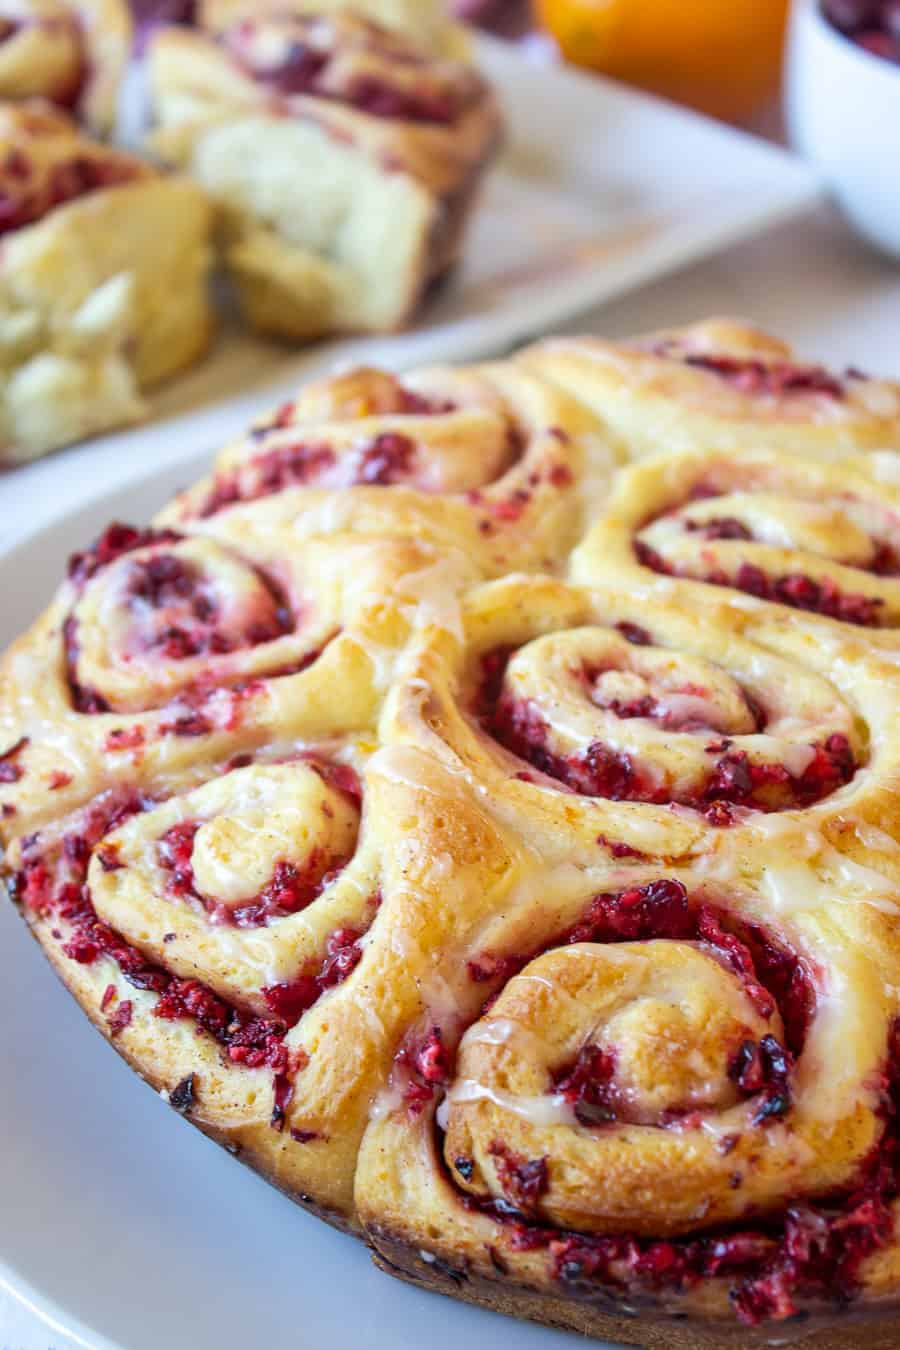 A plateful of freshly baked cinnamon rolls filled with chopped cranberries.